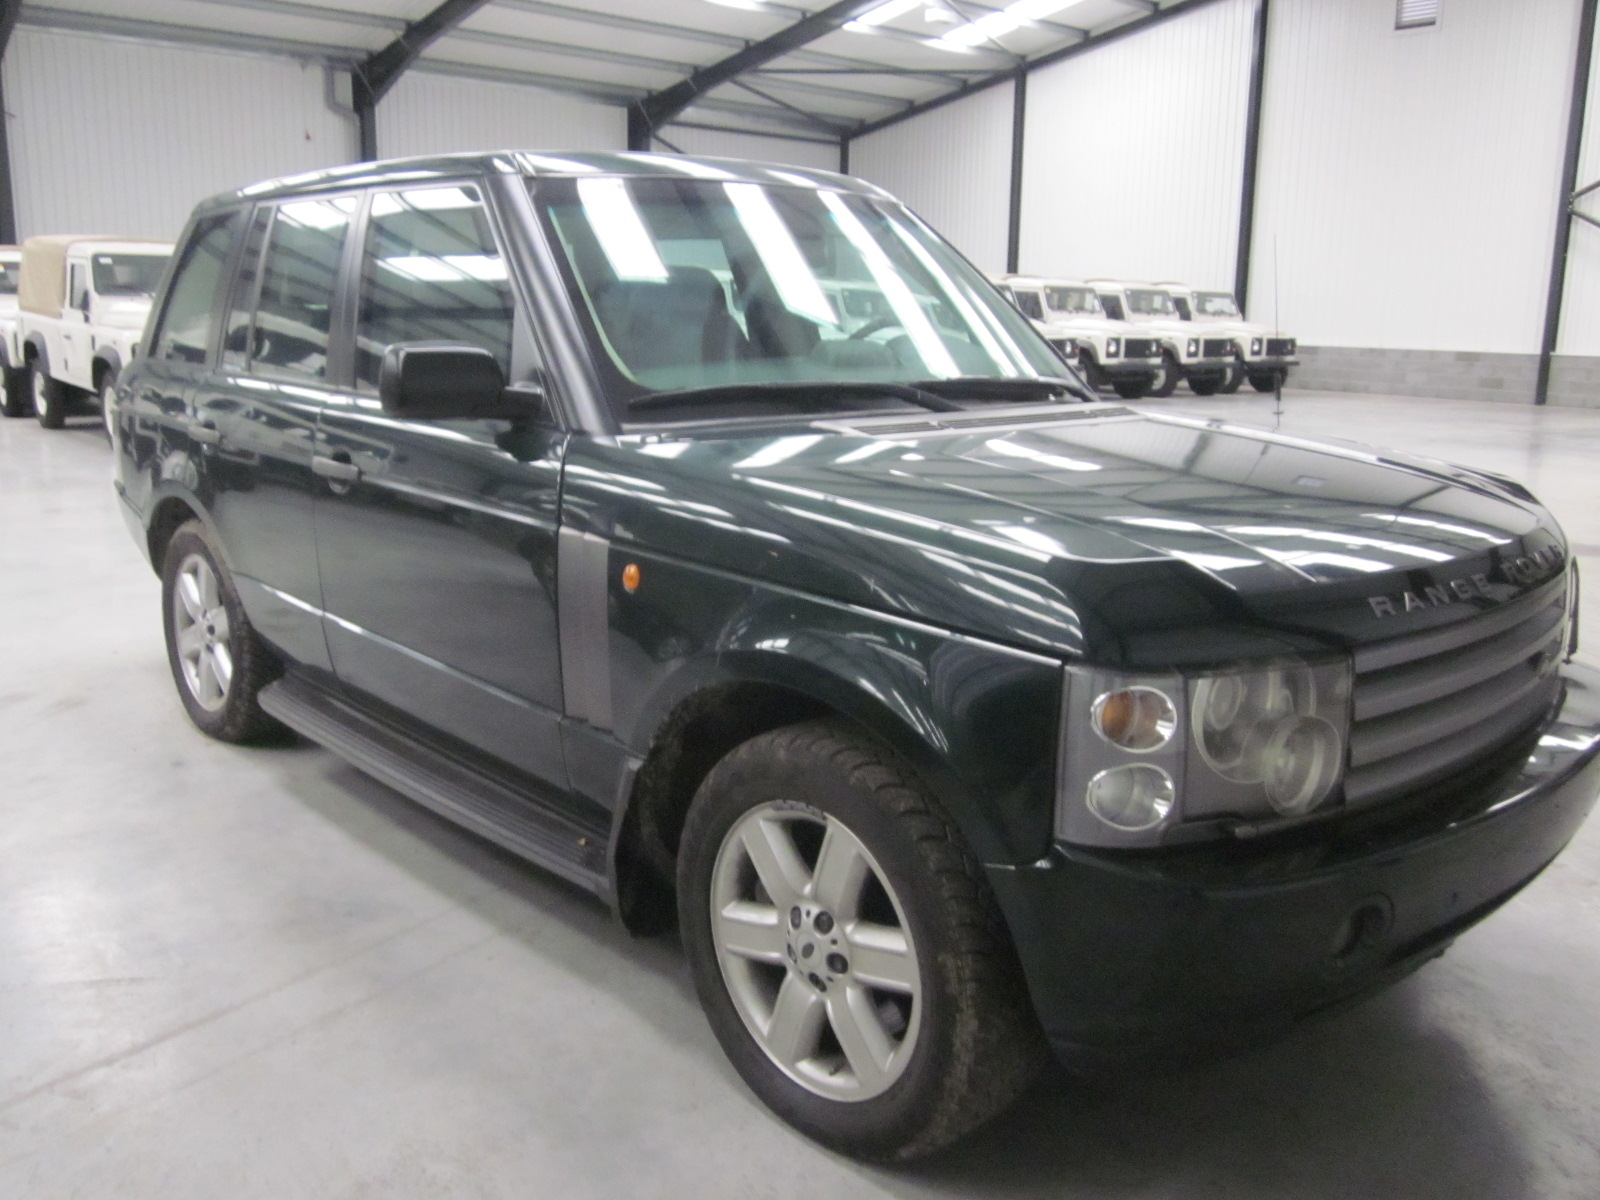 Armoured Range Rover vogue LHD V8 for sale | military vehicles